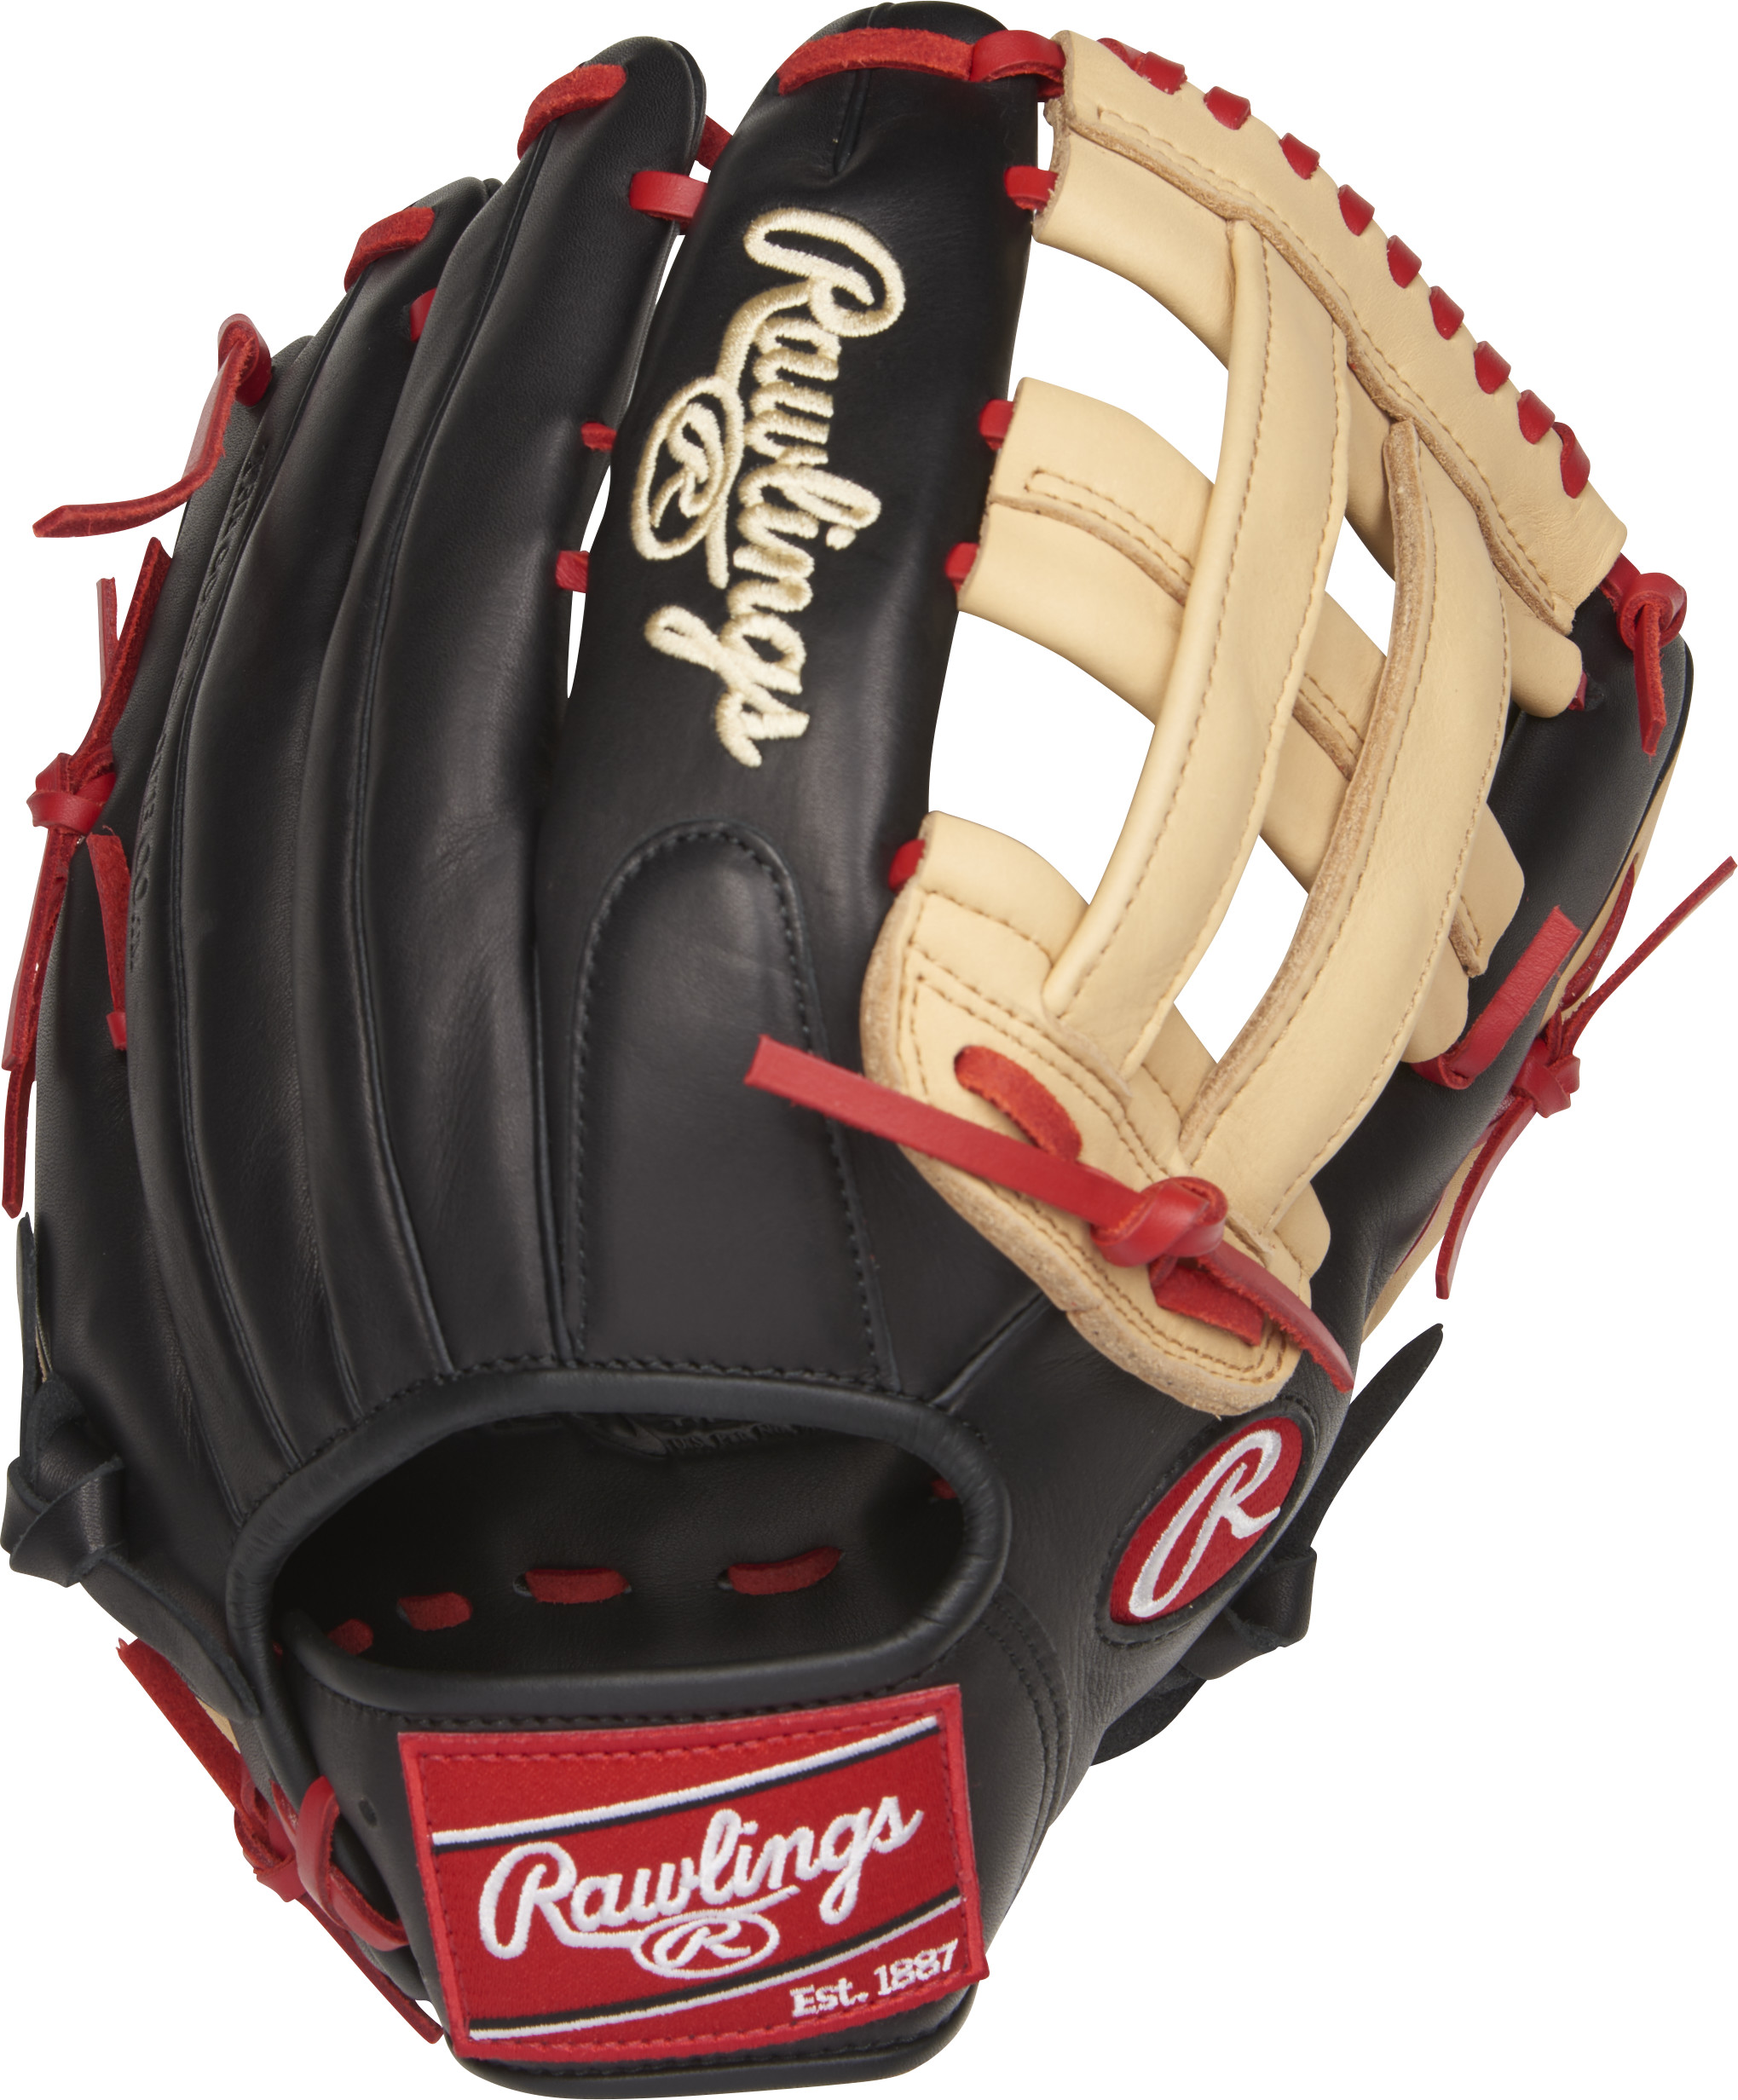 http://www.bestbatdeals.com/images/gloves/rawlings/GXLE3029-6BCS-2.jpg